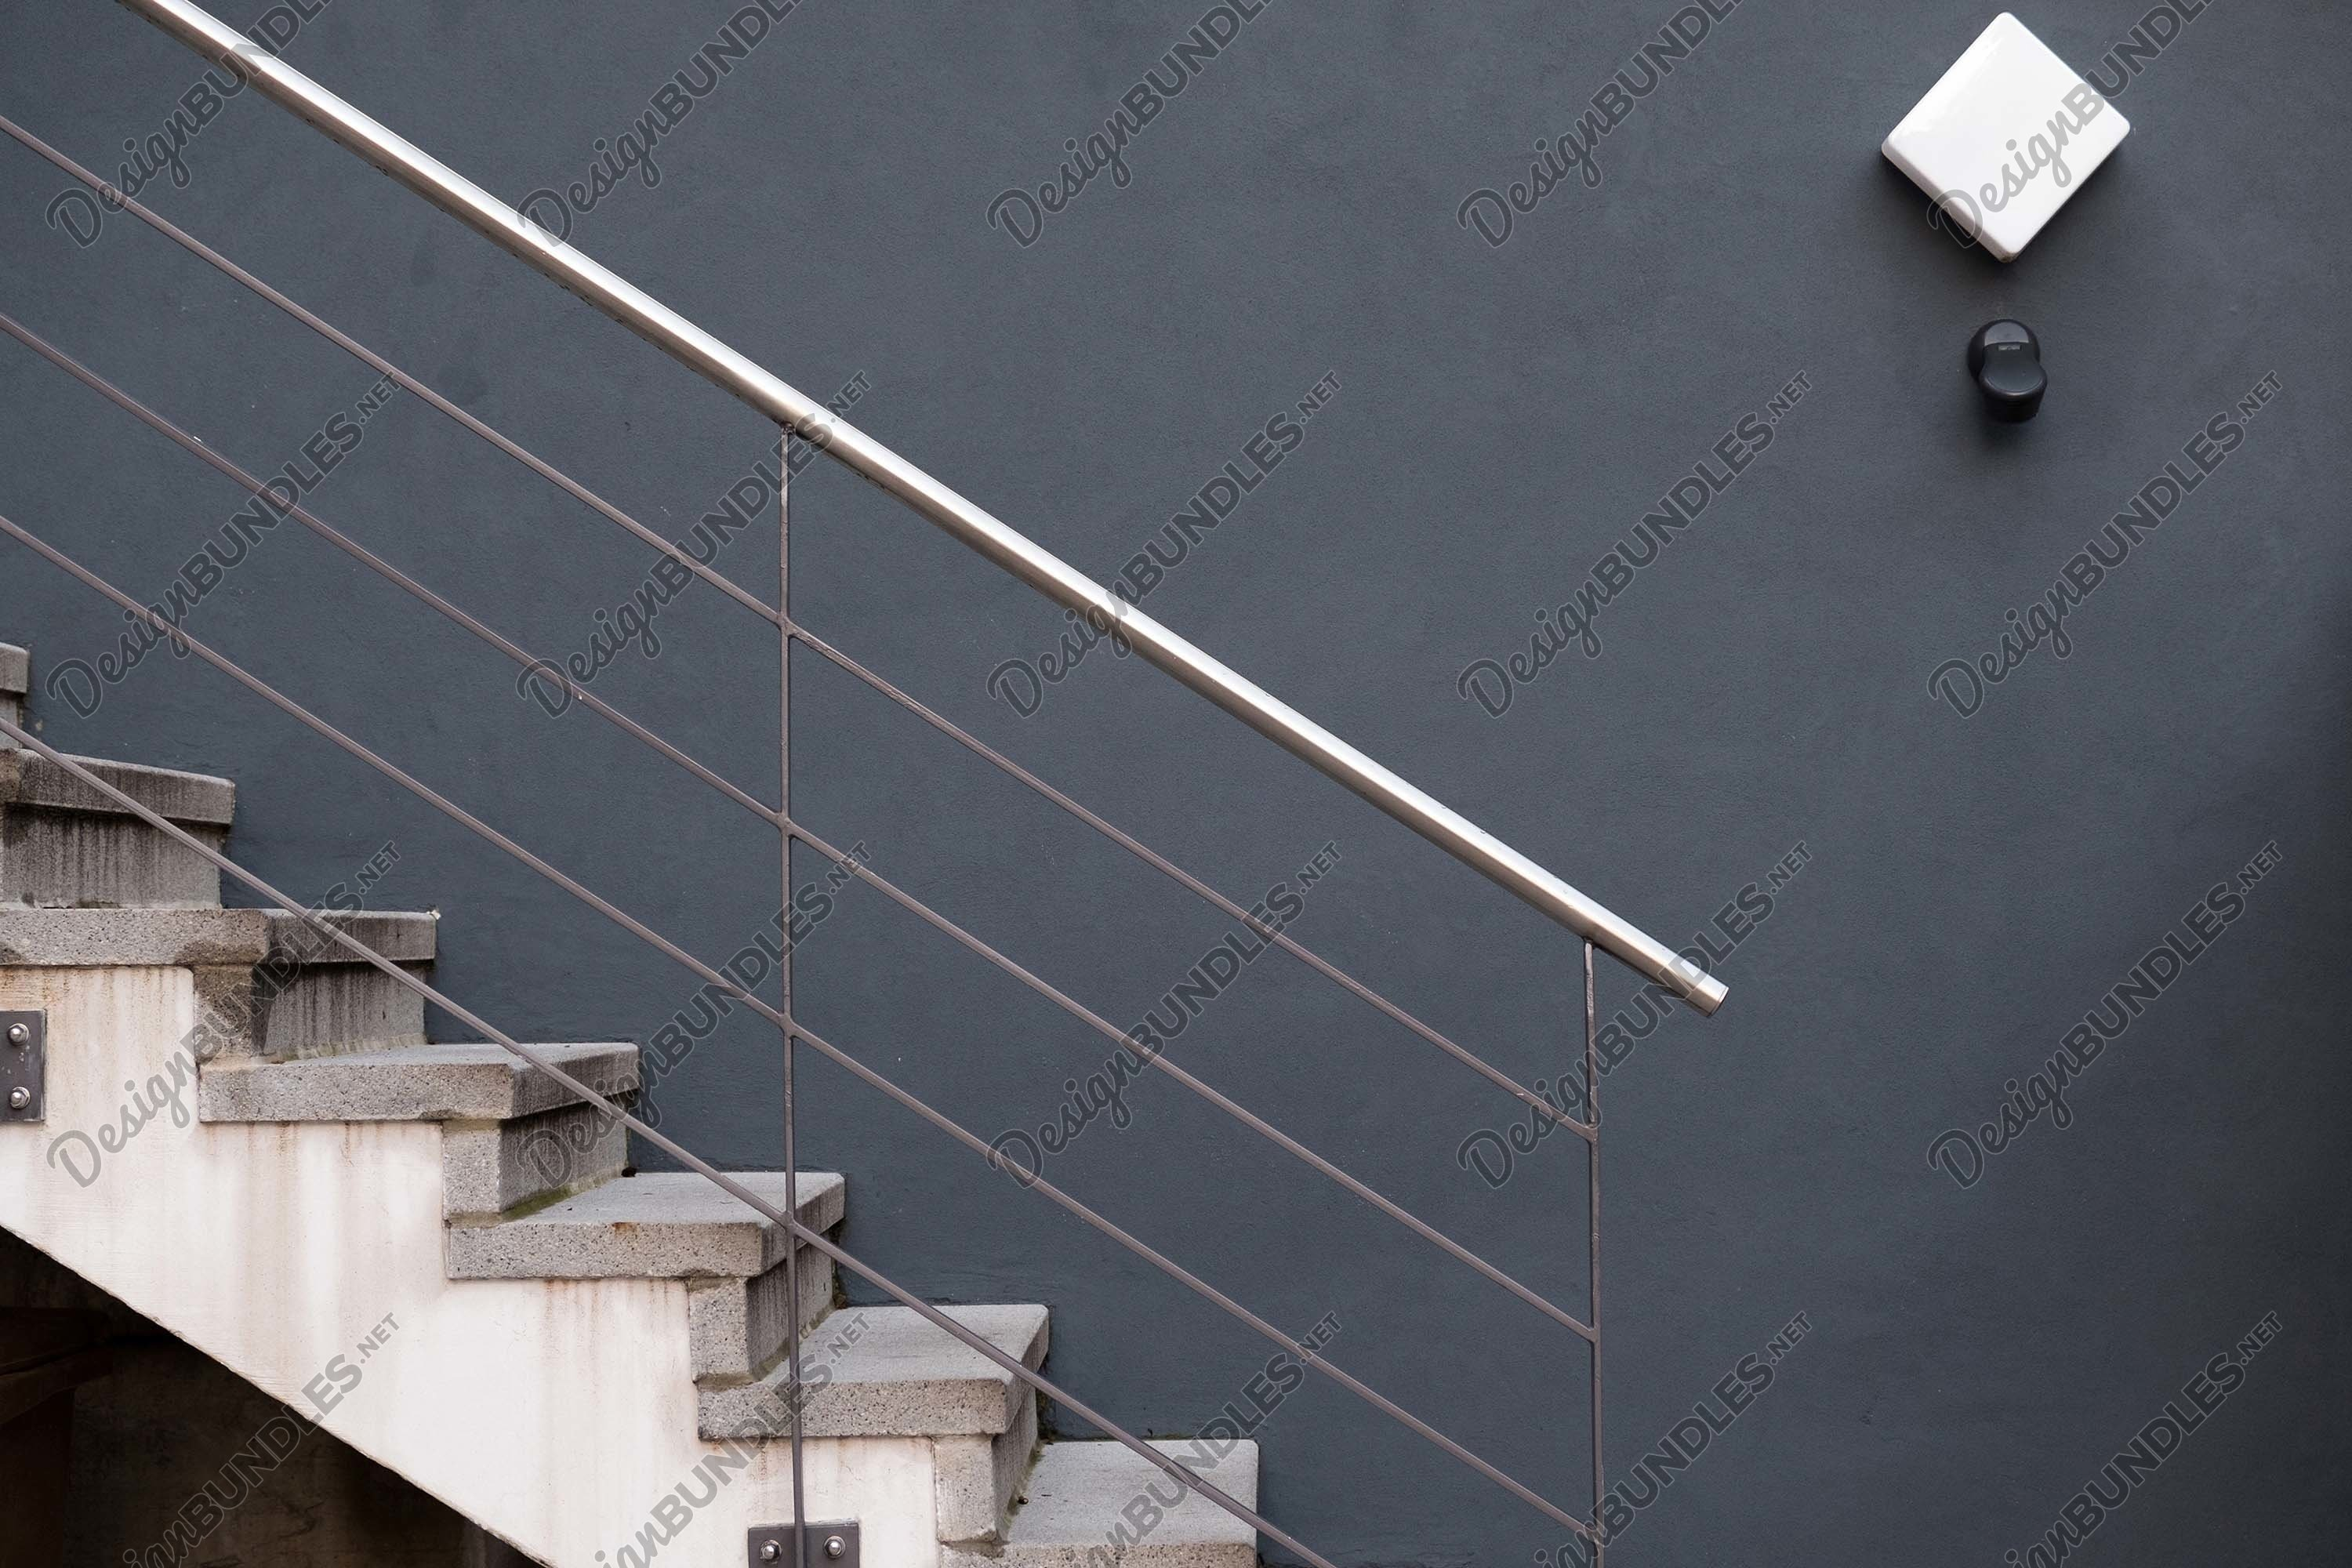 Stock Photo - Stairs example image 1